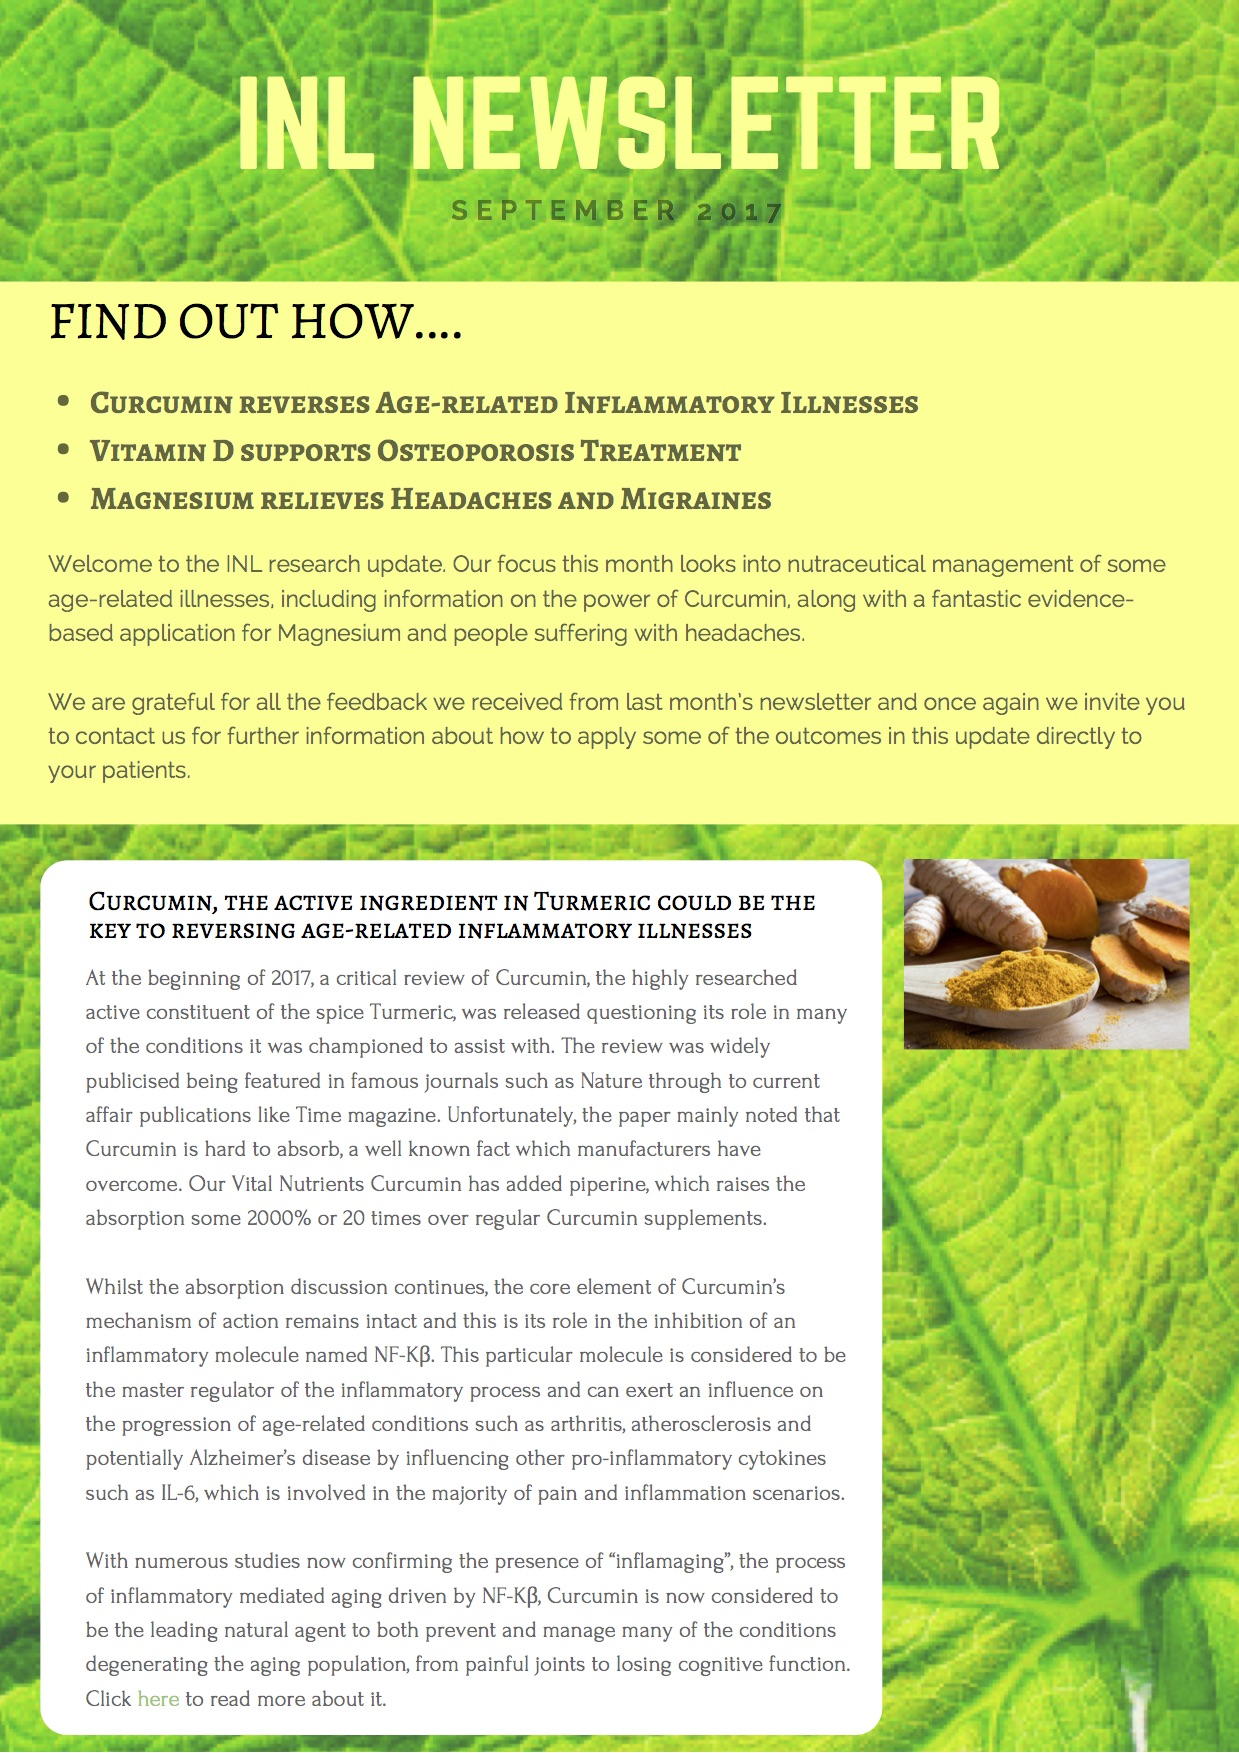 Click below to download:  INL Newsletter (Sep 2017) Curcumin, Vitamin D & Magnesium